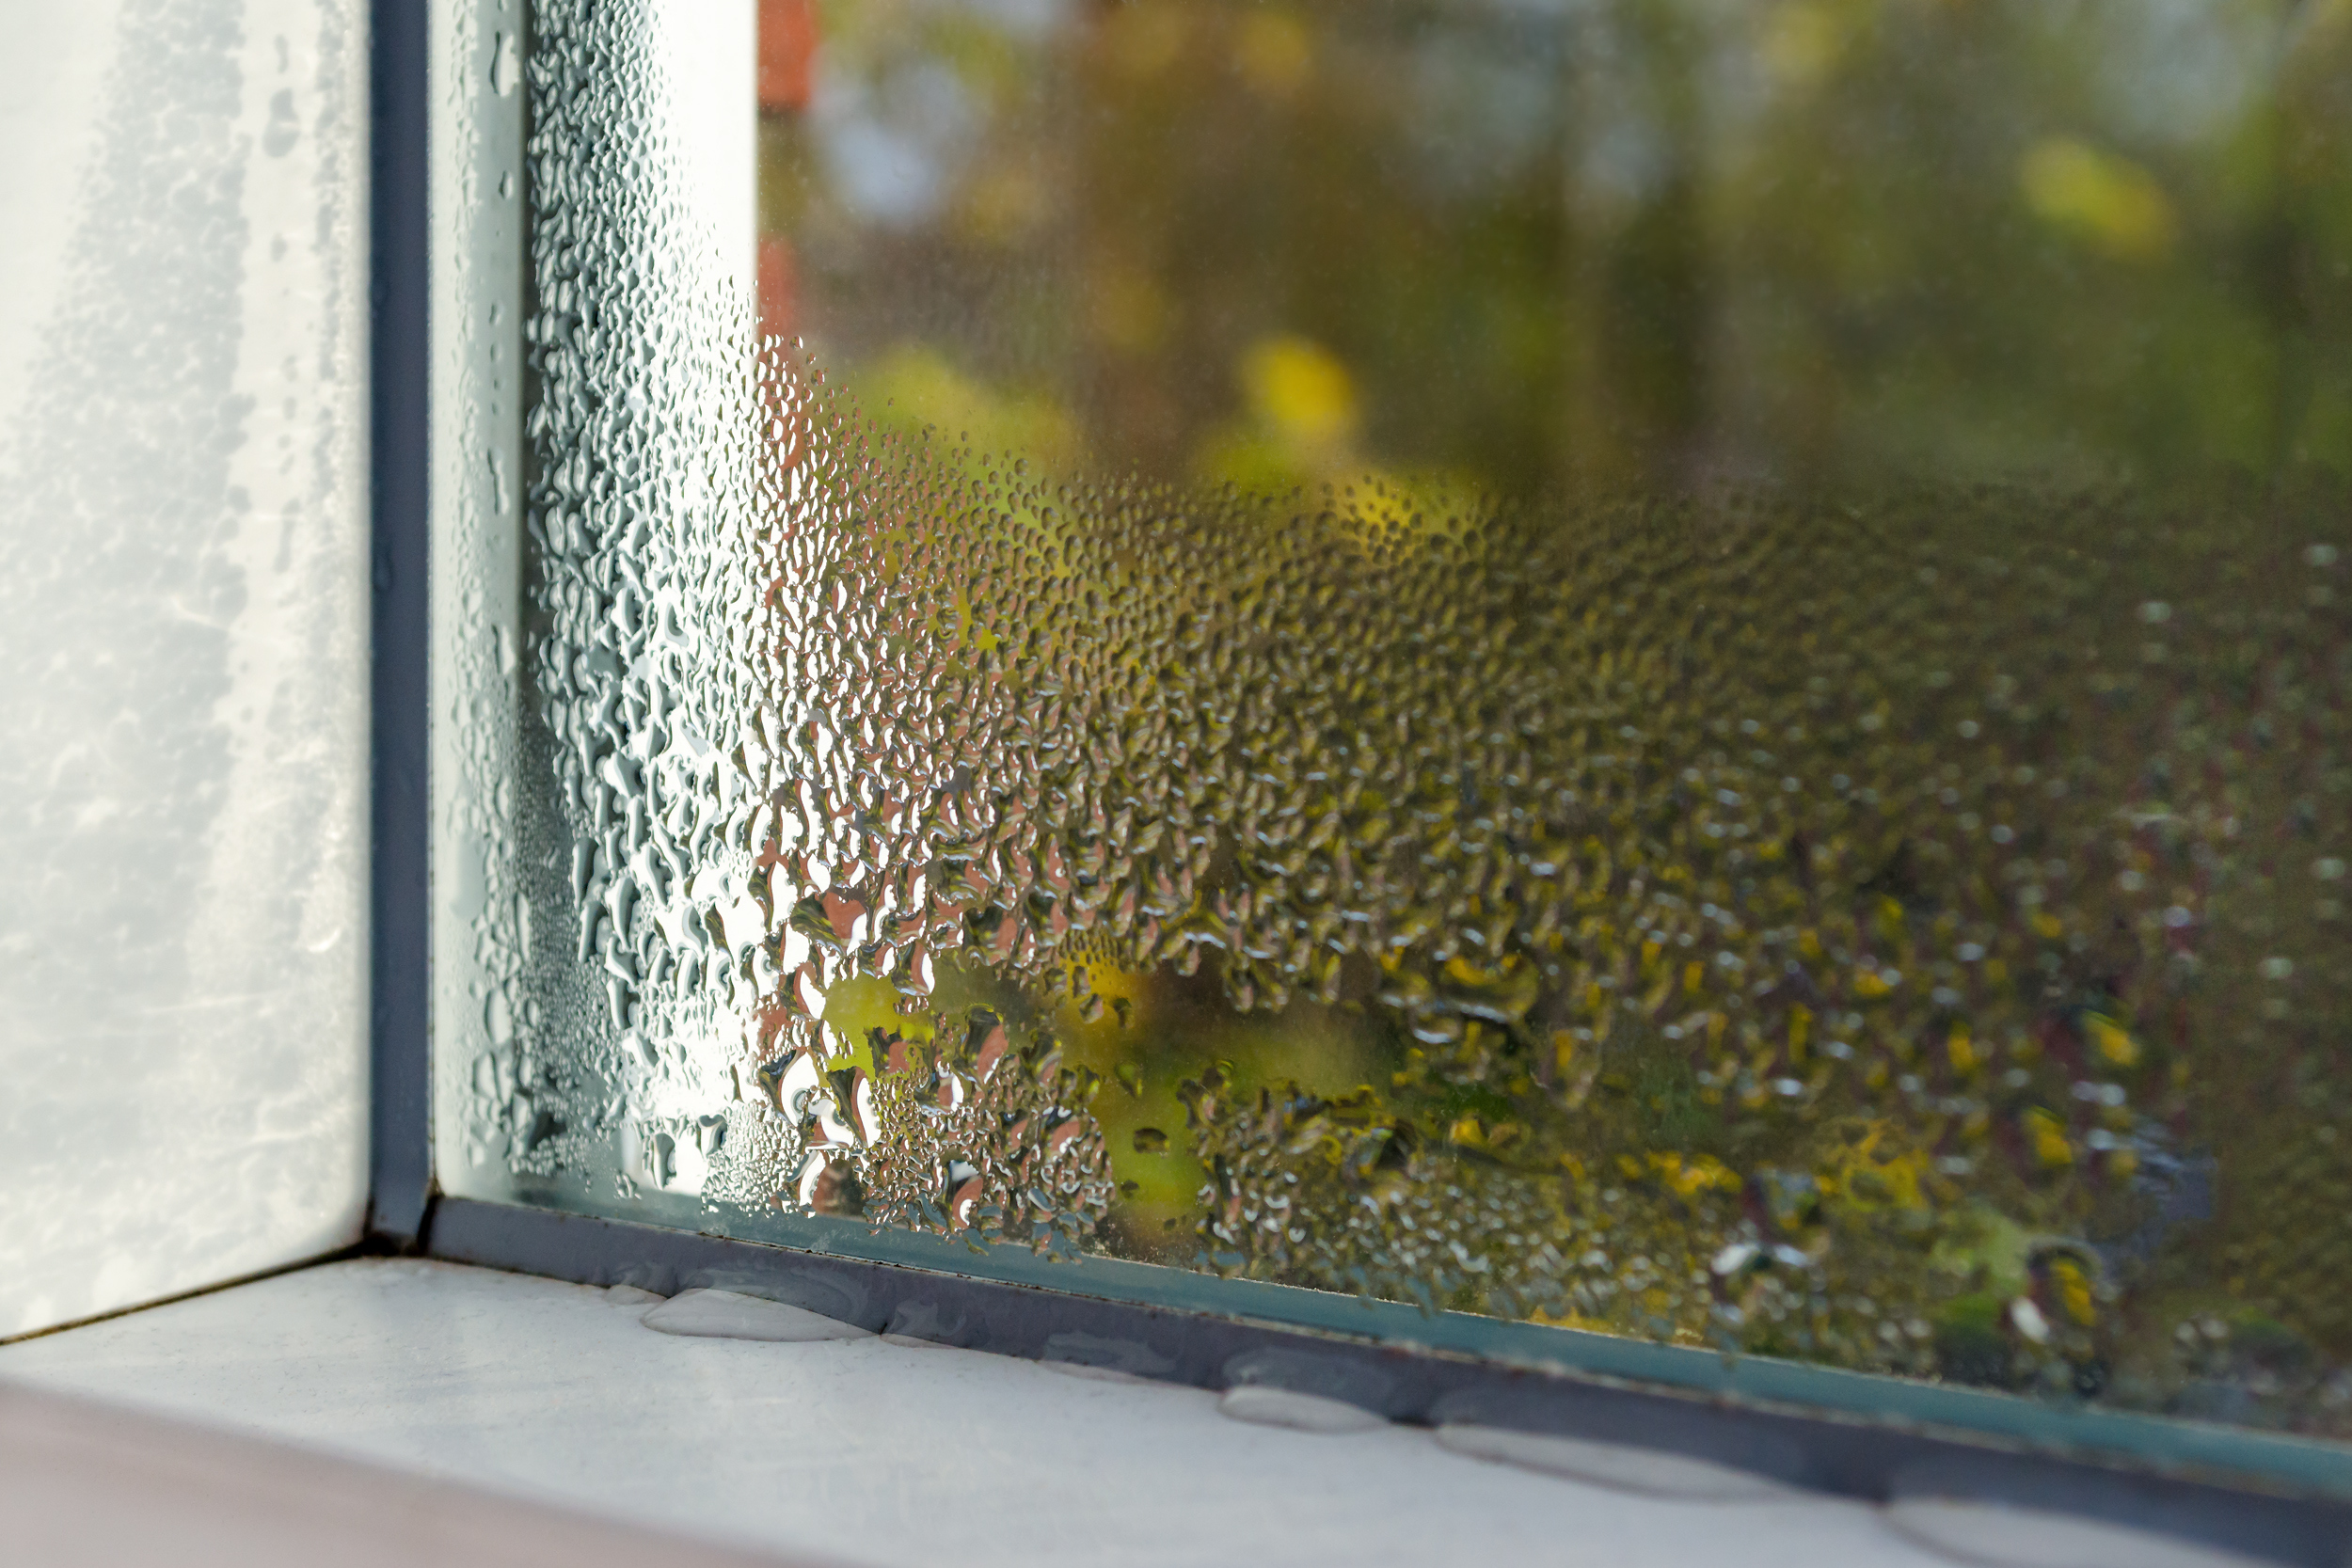 What is condensation, how does it occur in nature and what does it lead to